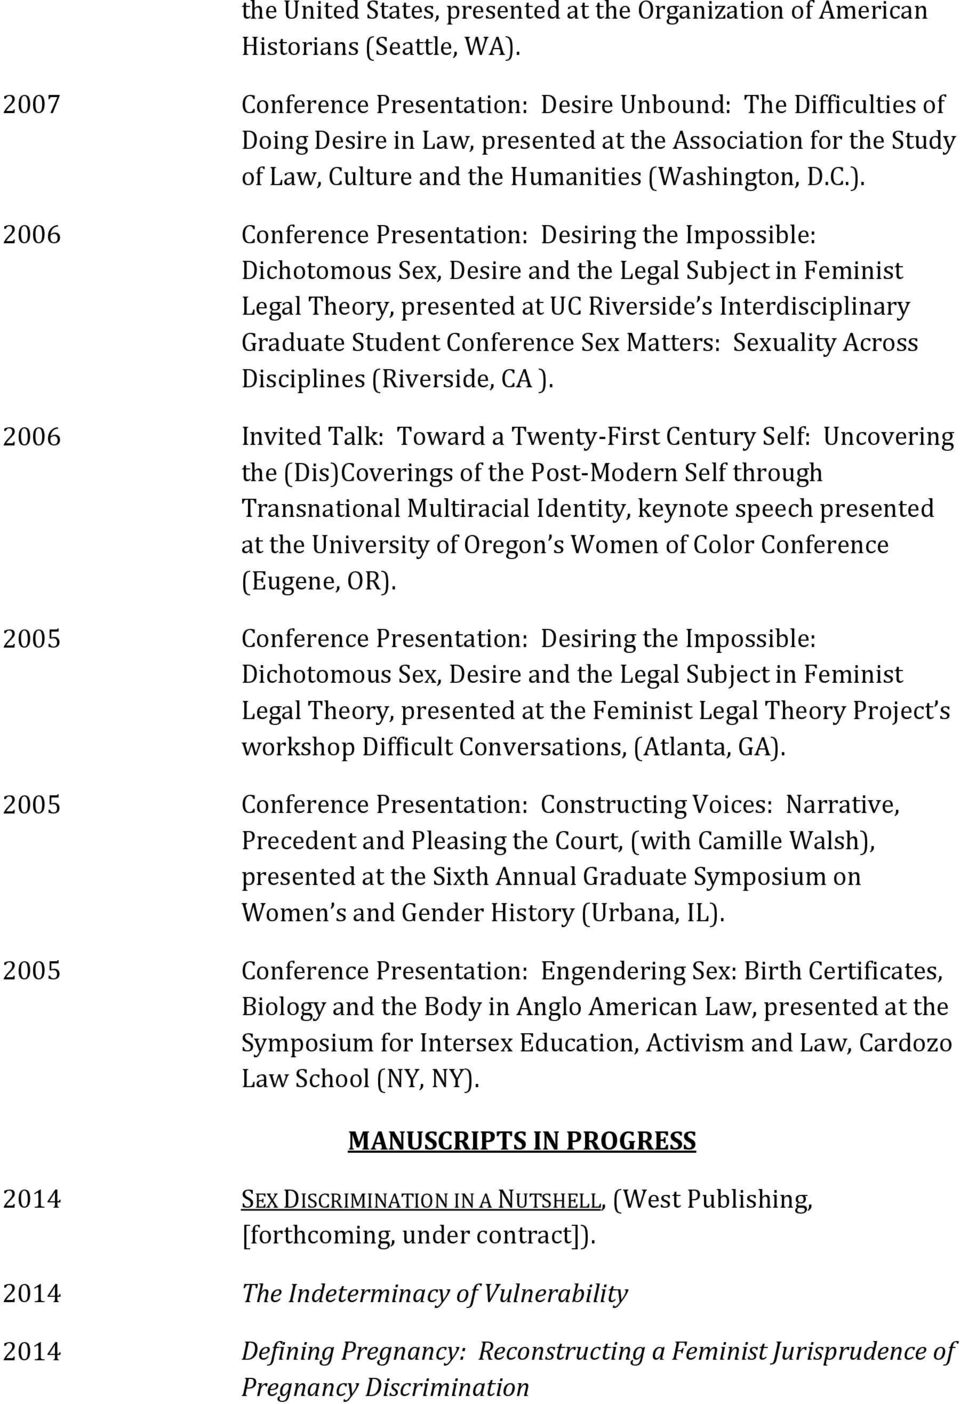 2006 Conference Presentation: Desiring the Impossible: Dichotomous Sex, Desire and the Legal Subject in Feminist Legal Theory, presented at UC Riverside s Interdisciplinary Graduate Student